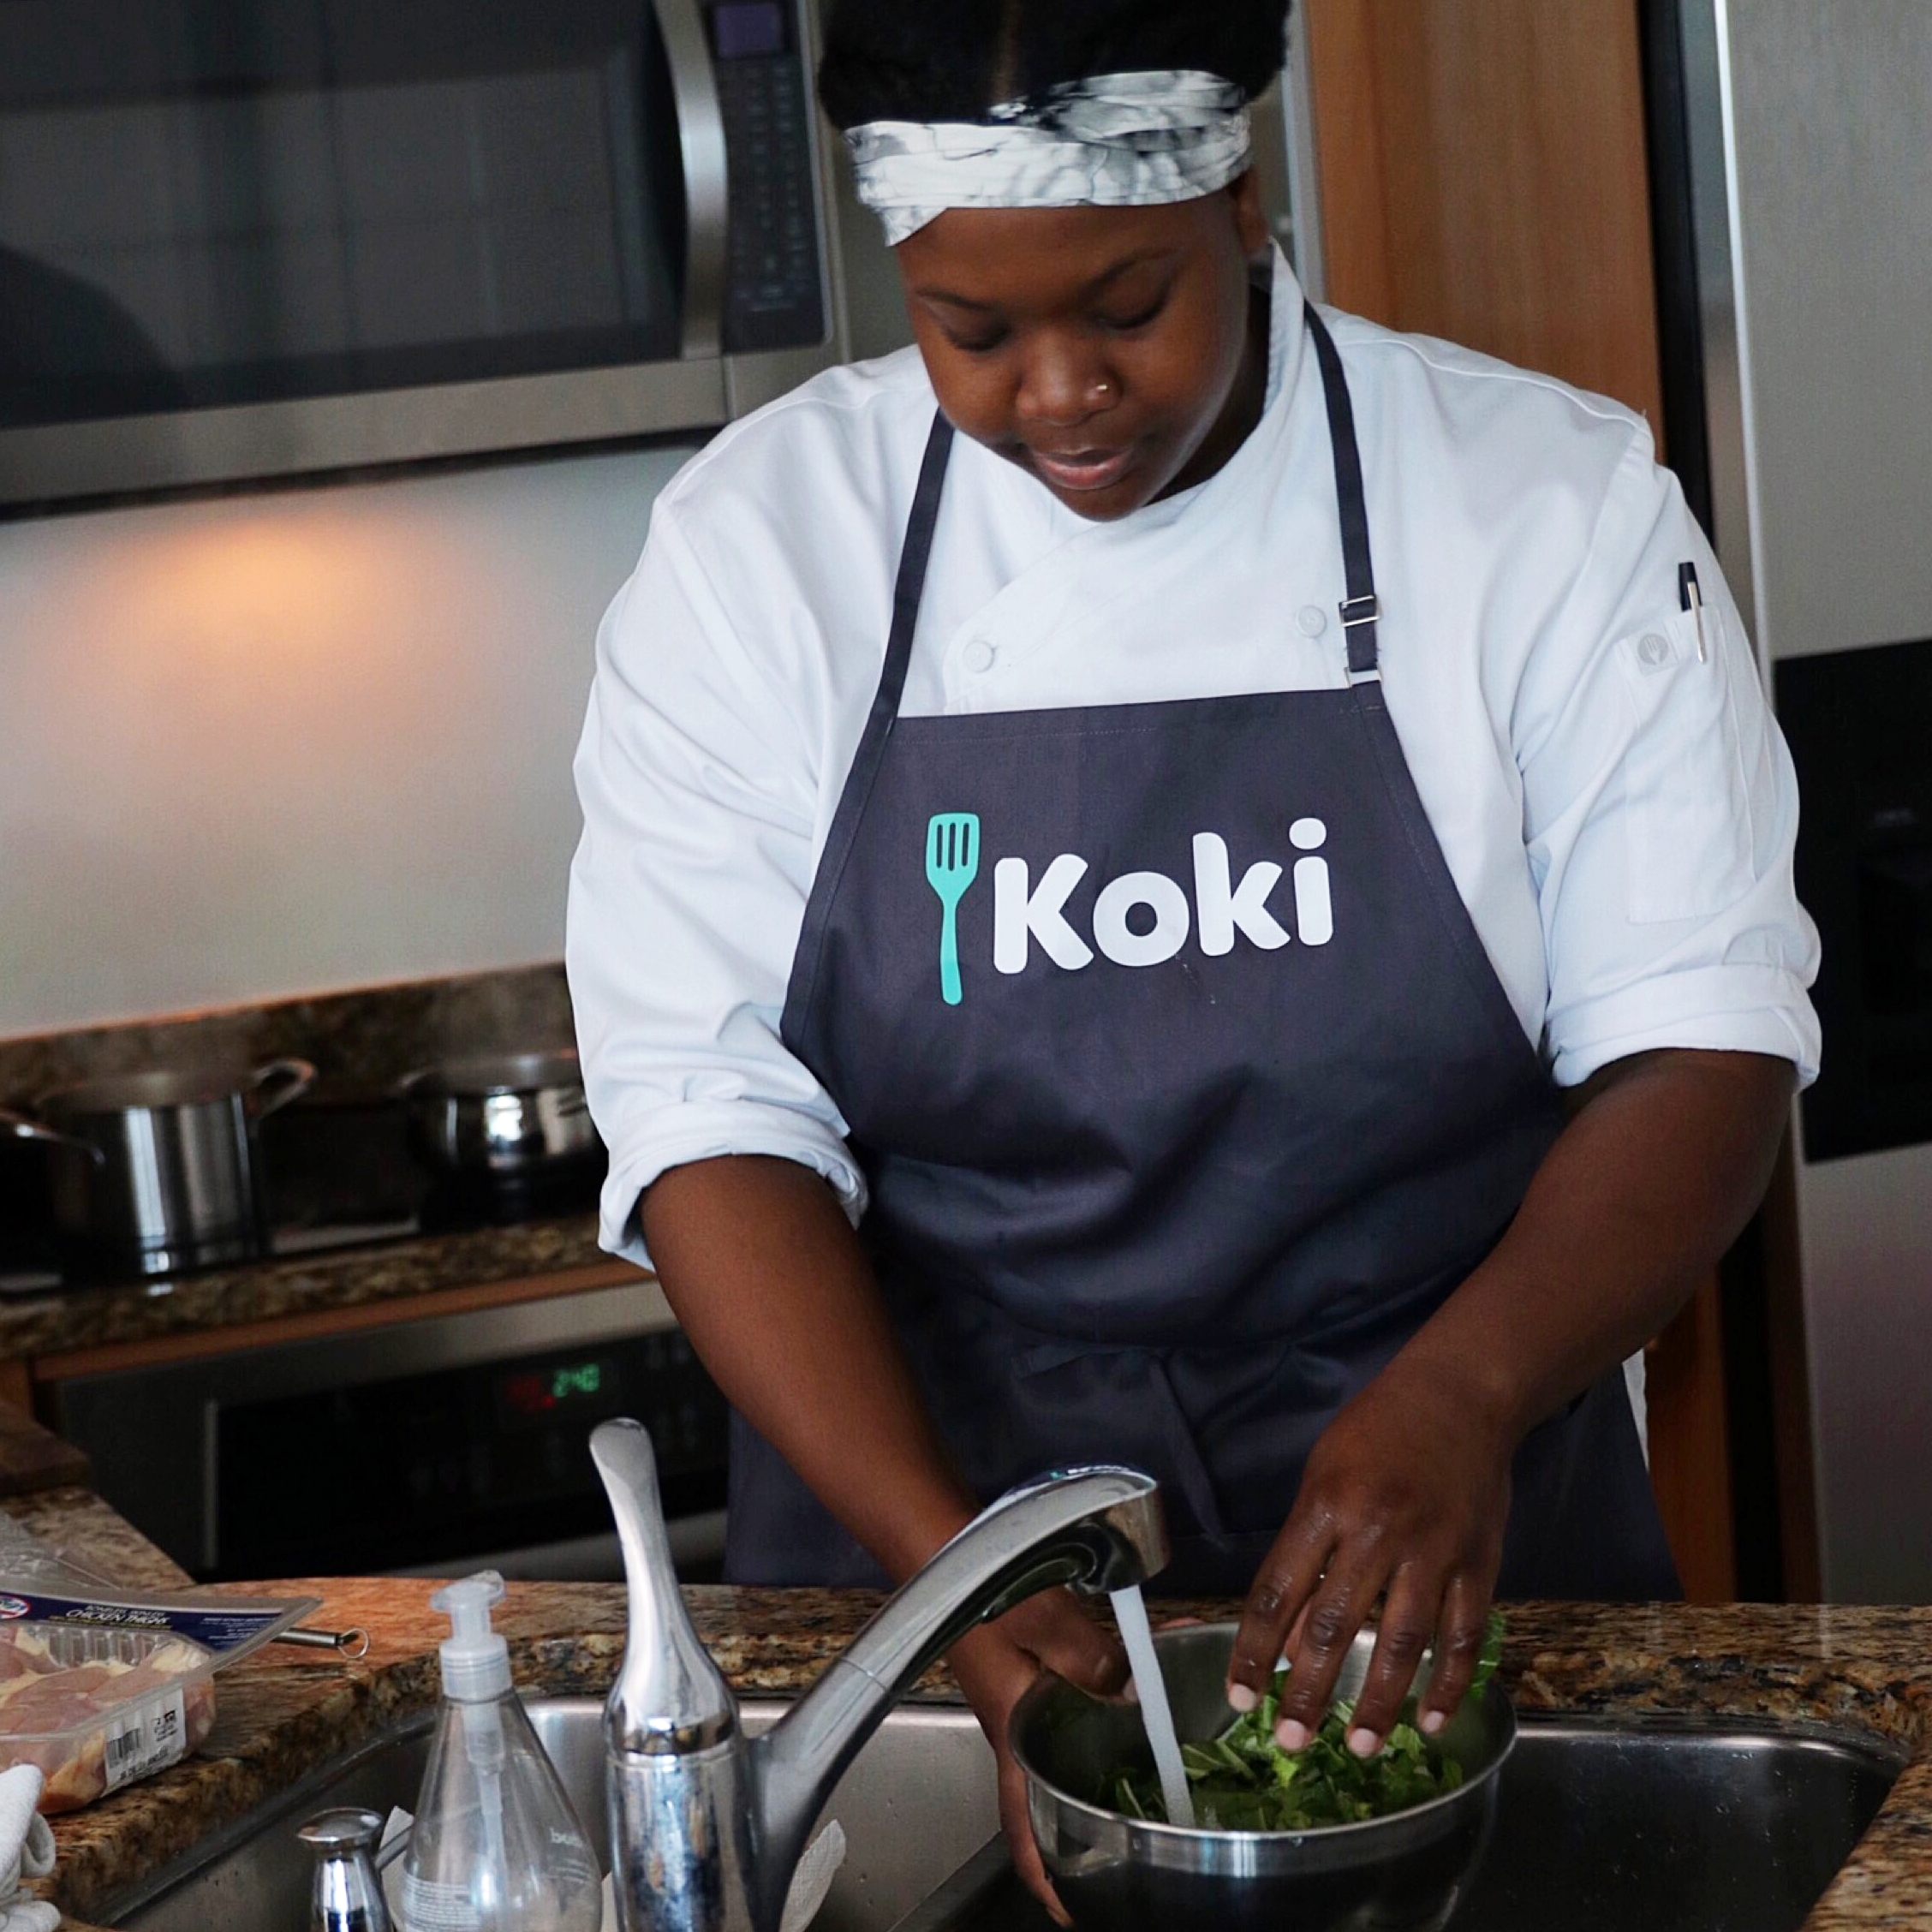 Koki - kokiexperience.comDon't fret about that holiday dinner party! Koki is a next day personal chef service allowing you to conveniently book a chef to your home, They even bring fresh organic groceries and any necessary cookware so you can focus on the other stuff.